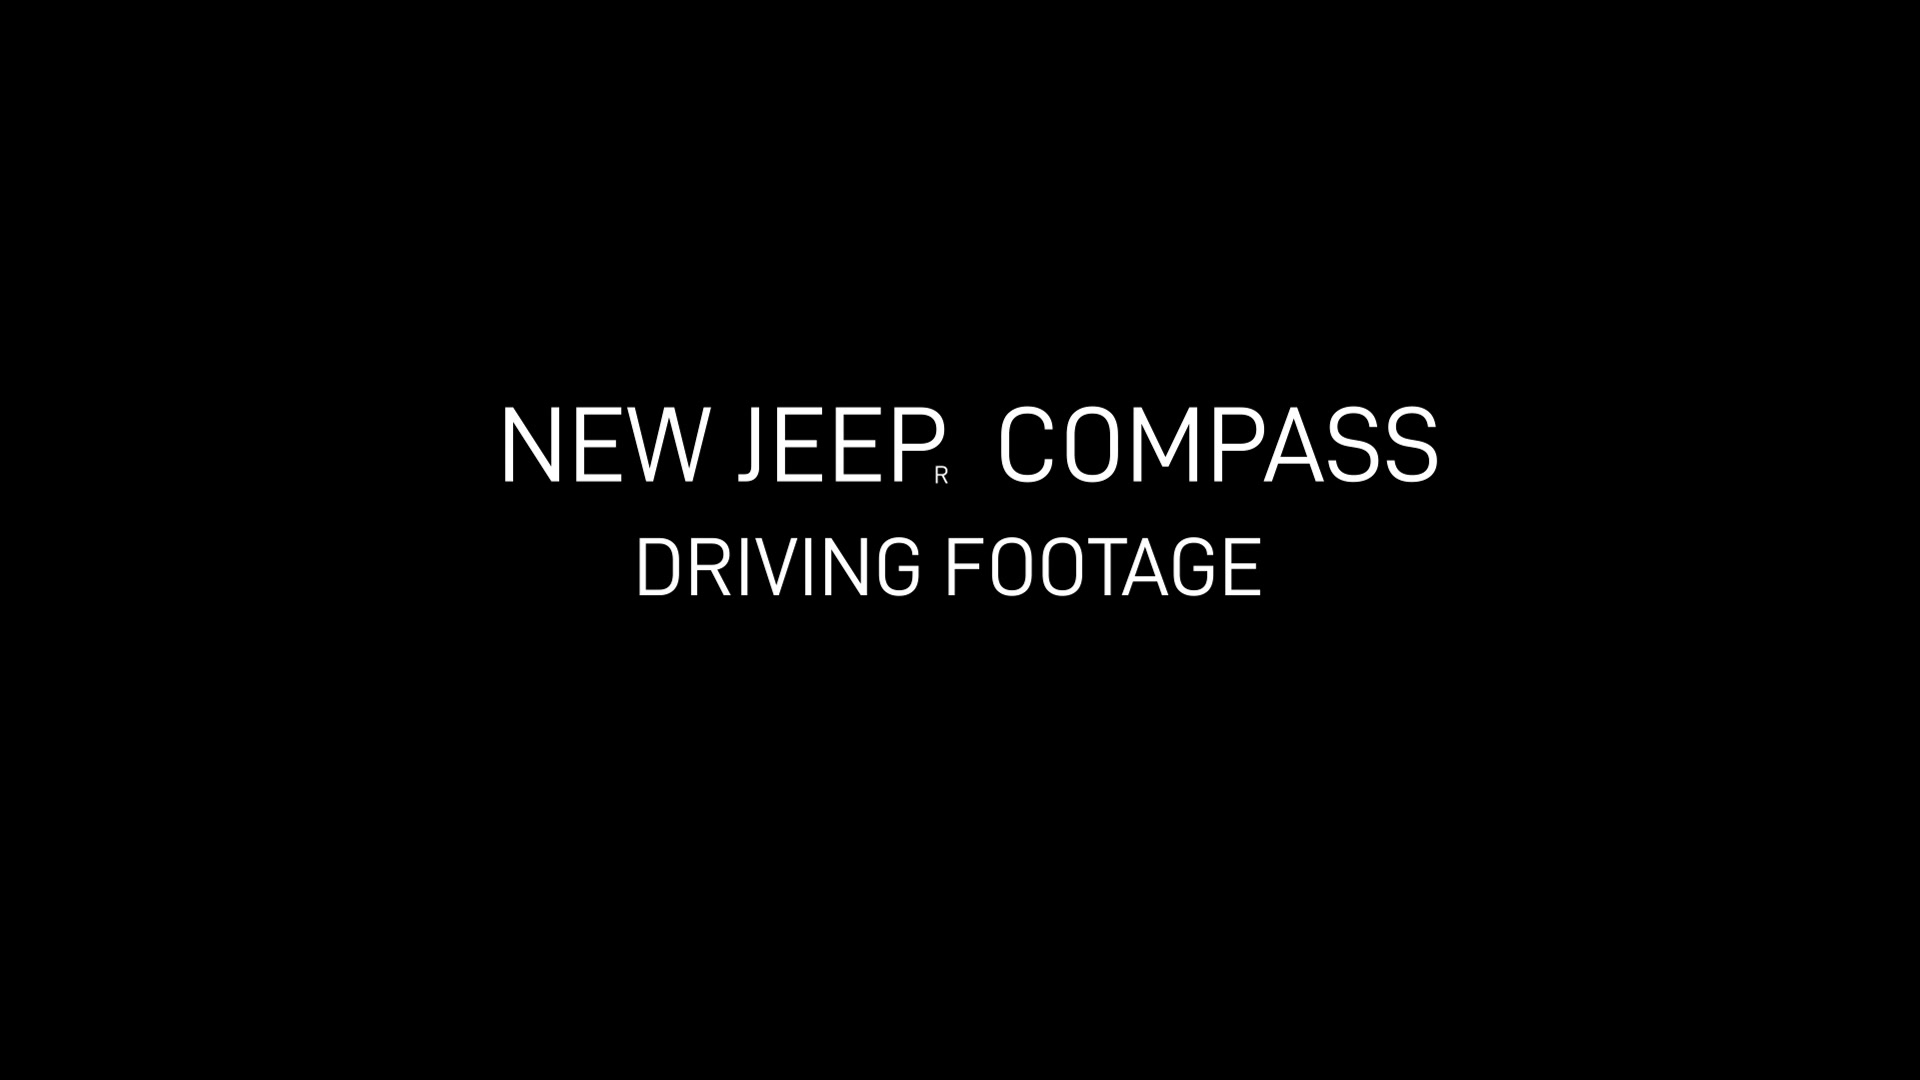 New 2020 Jeep® Compass Footage